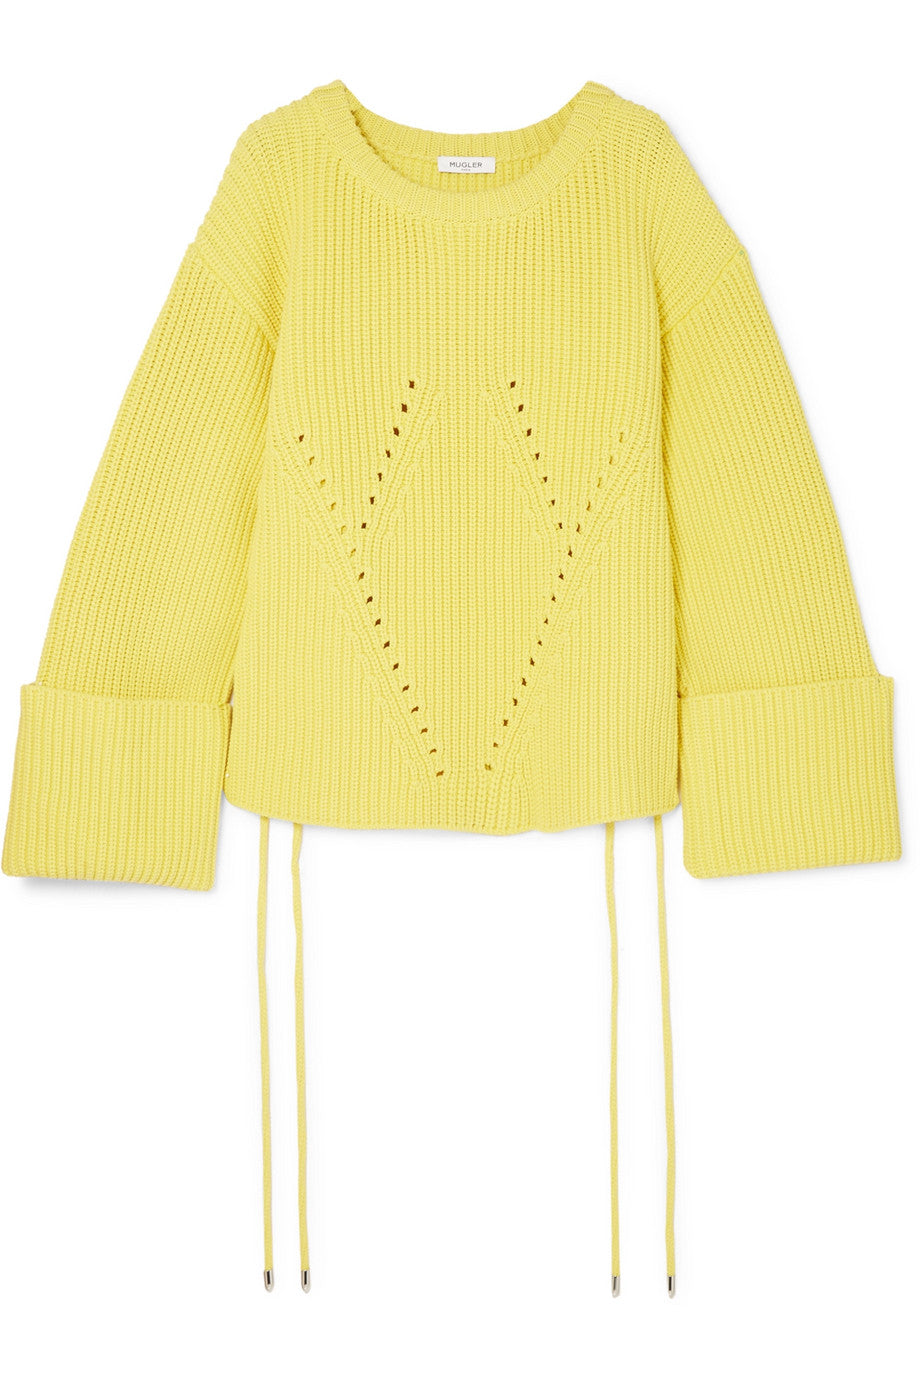 MUGLER Oversized lace-up ribbed cotton-blend sweater